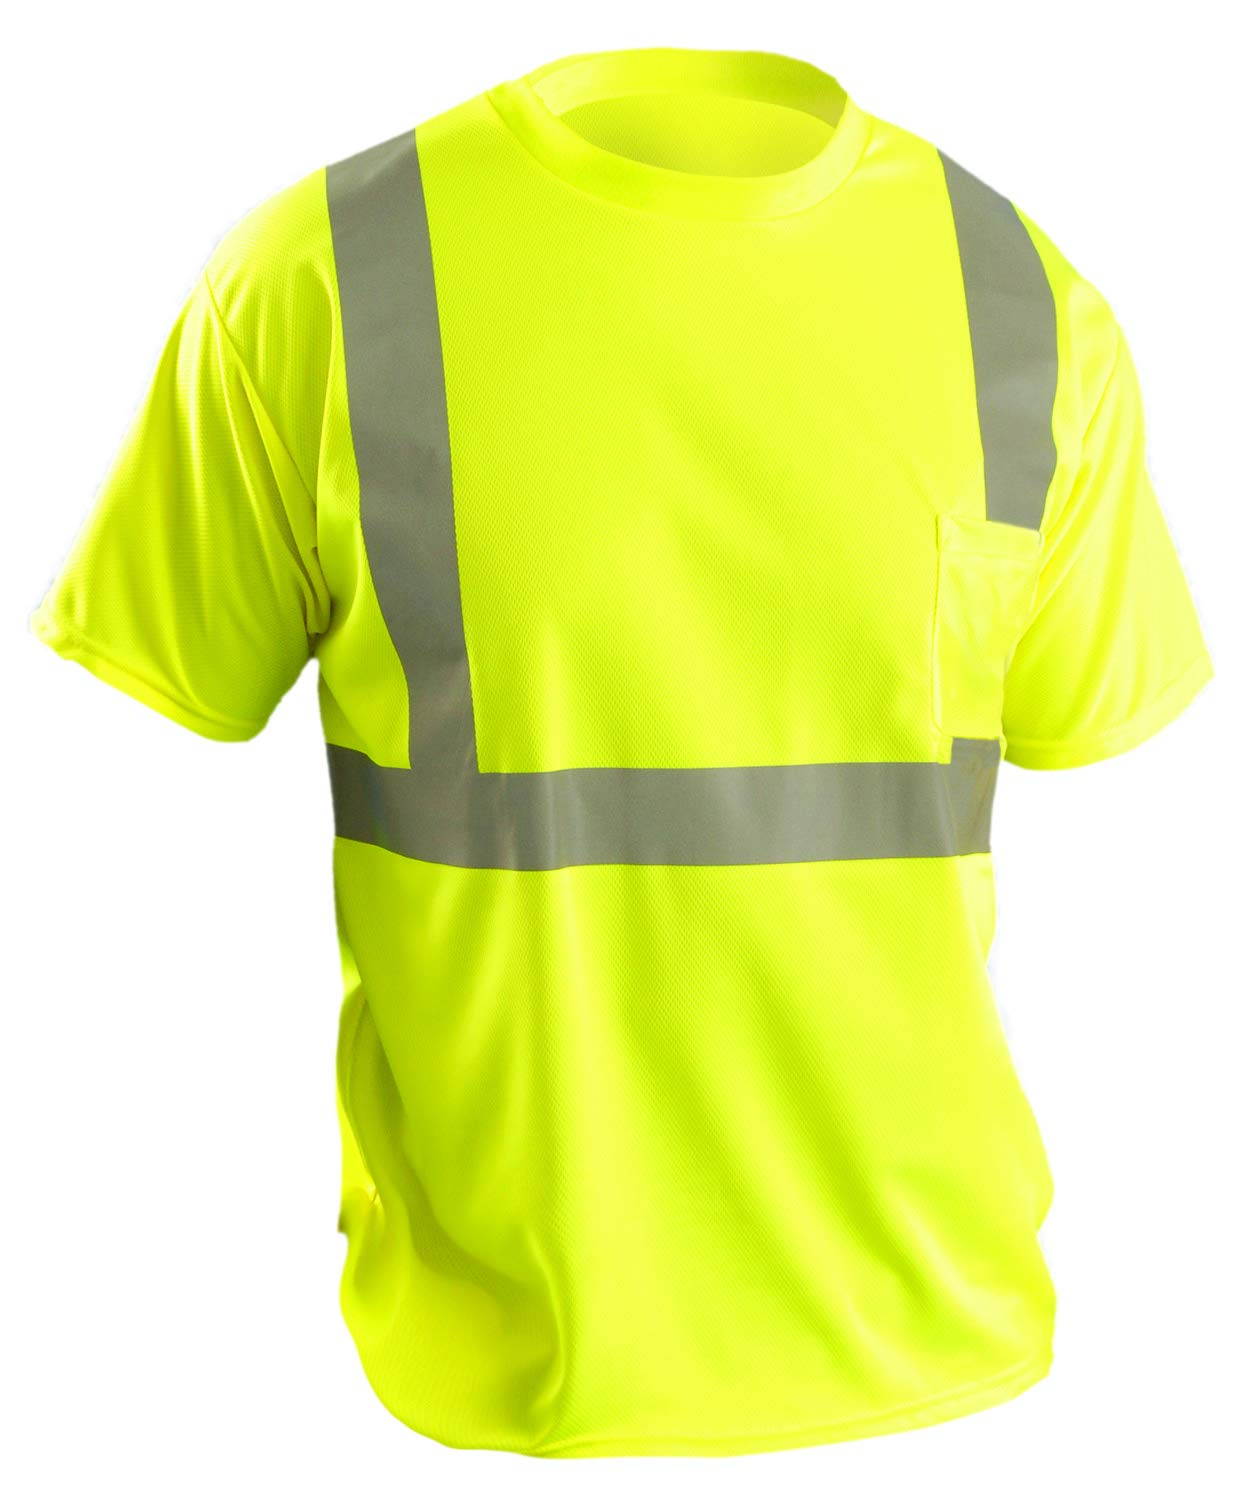 OccuNomix LUX-SSETP2B-YXL Classic Standard Short Sleeve Wicking Birdseye T-Shirt with Pocket, Class 2, 100% ANSI Wicking Polyester Birdseye, X-Large, Yellow (High Visibility)